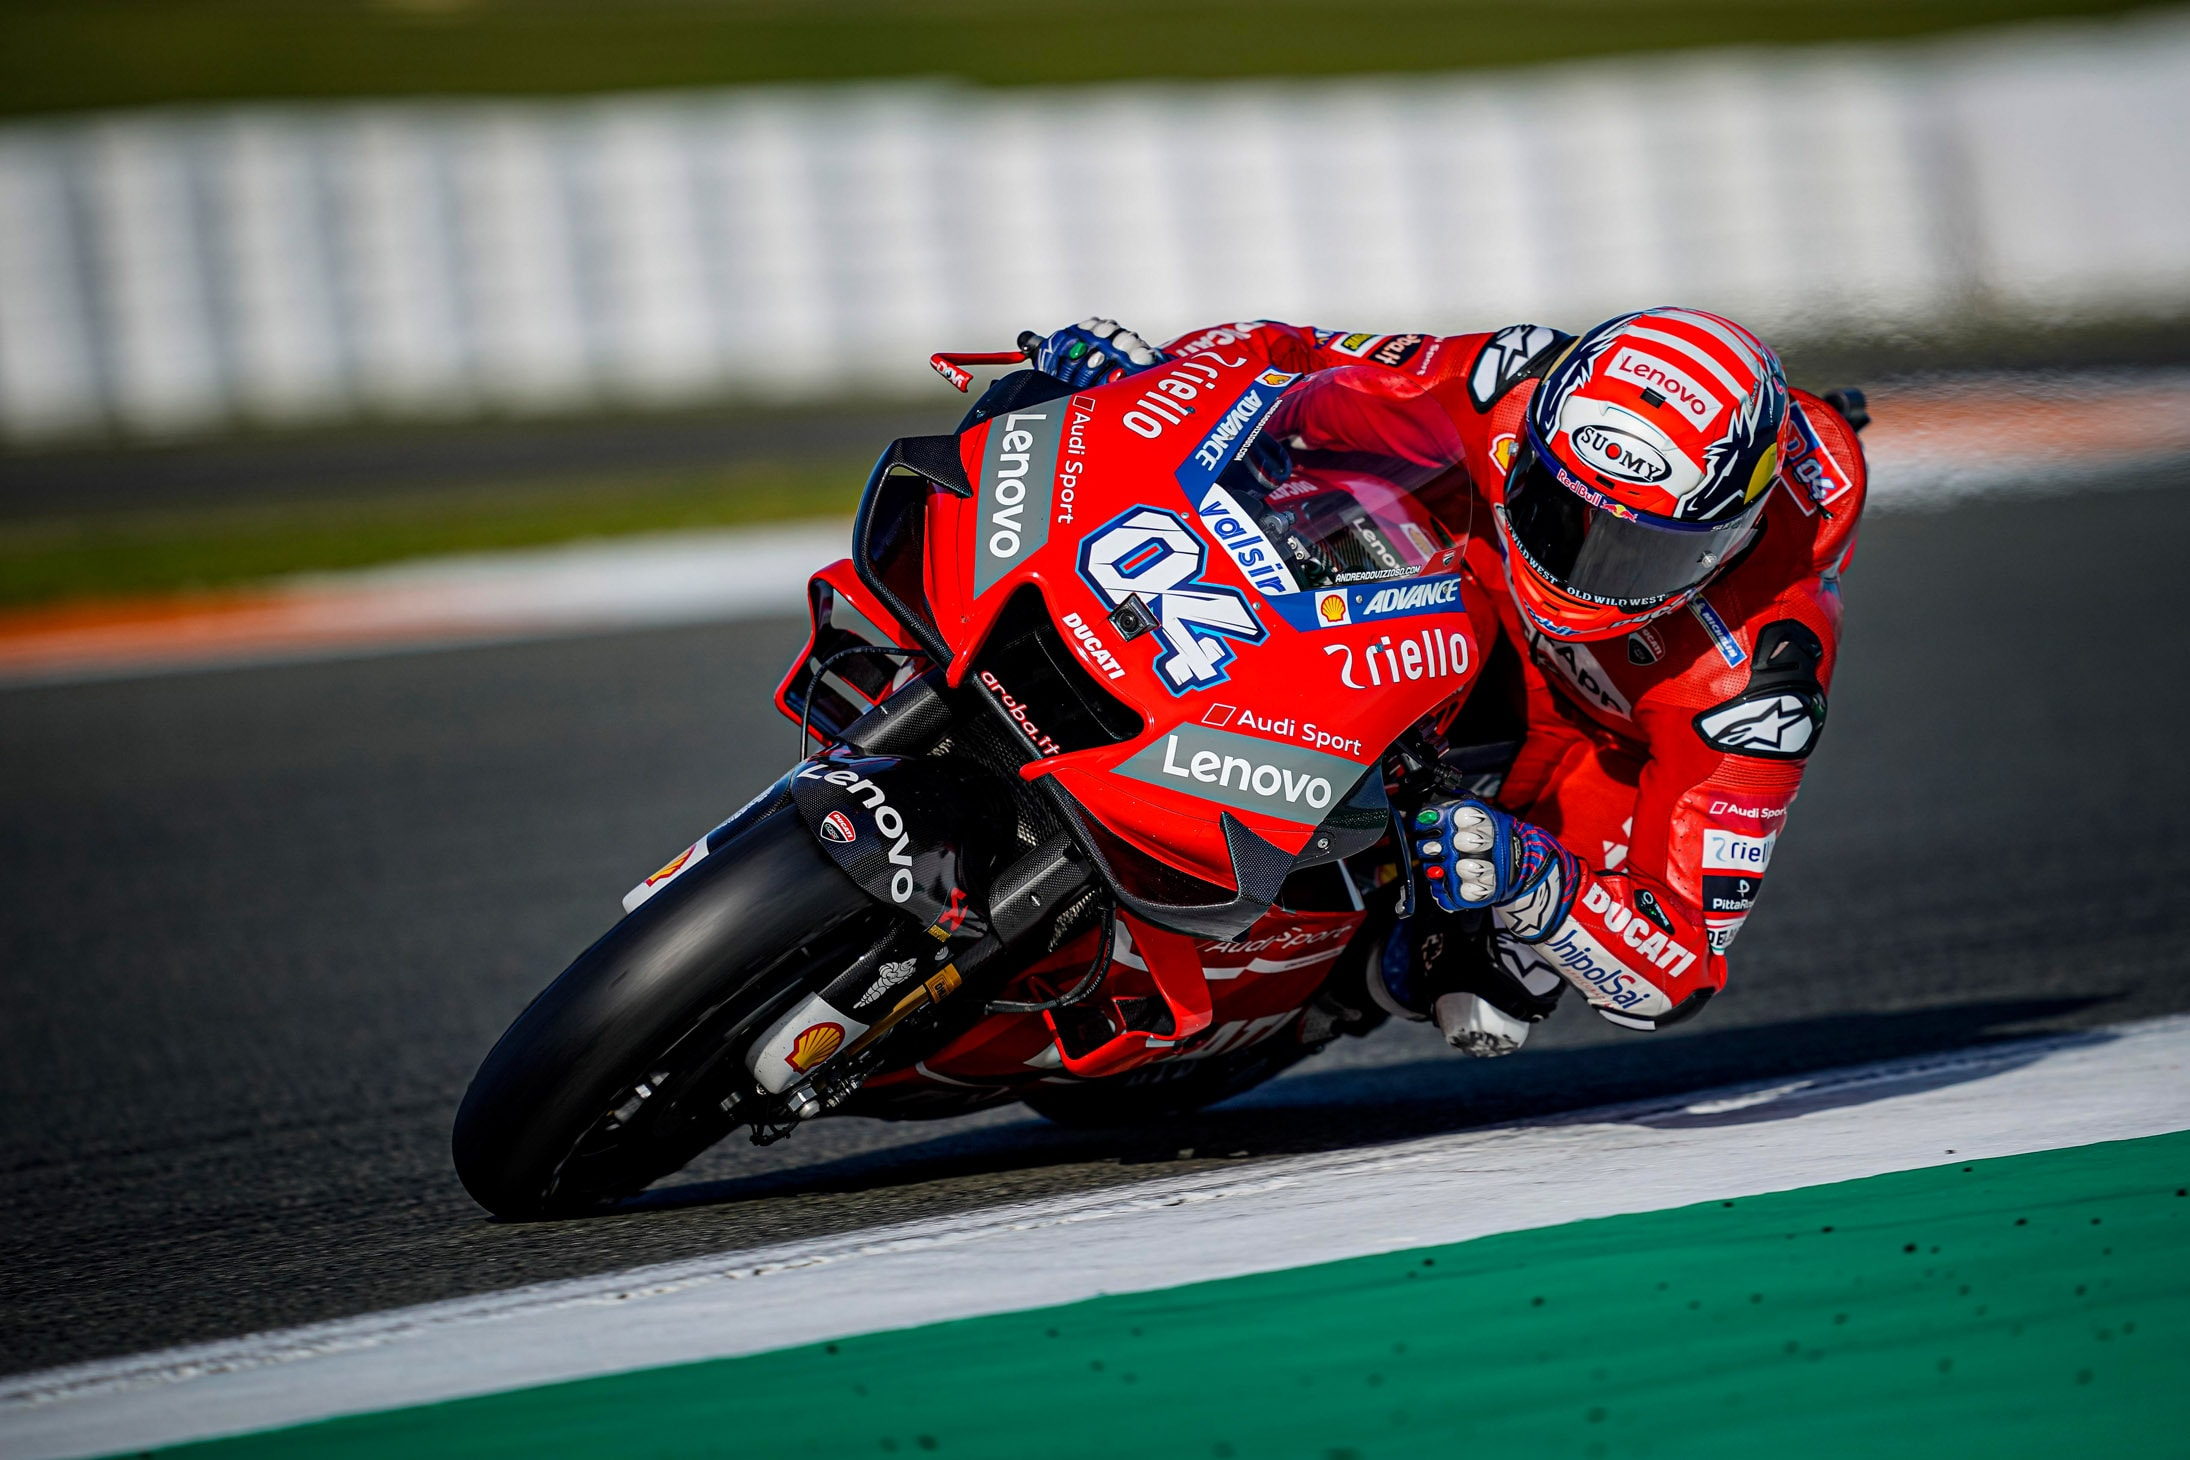 2020 Motogp Testing Conclude At Valencia With Dovizioso 8th Total Motorcycle